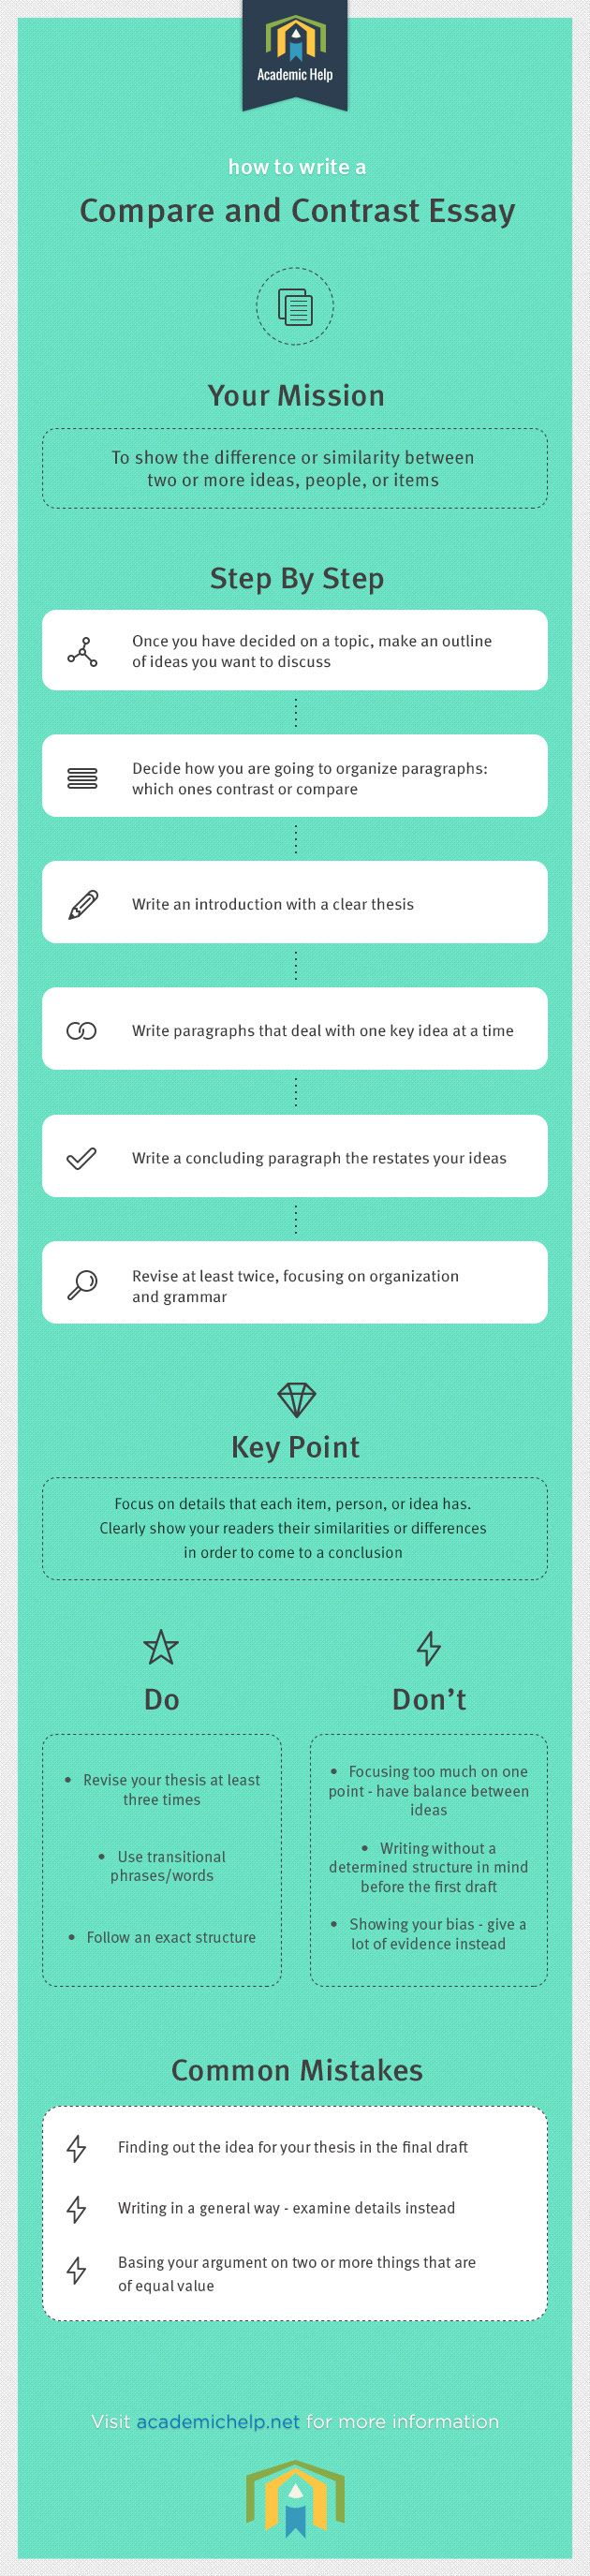 000 Infographics on how to write a compare and contrast